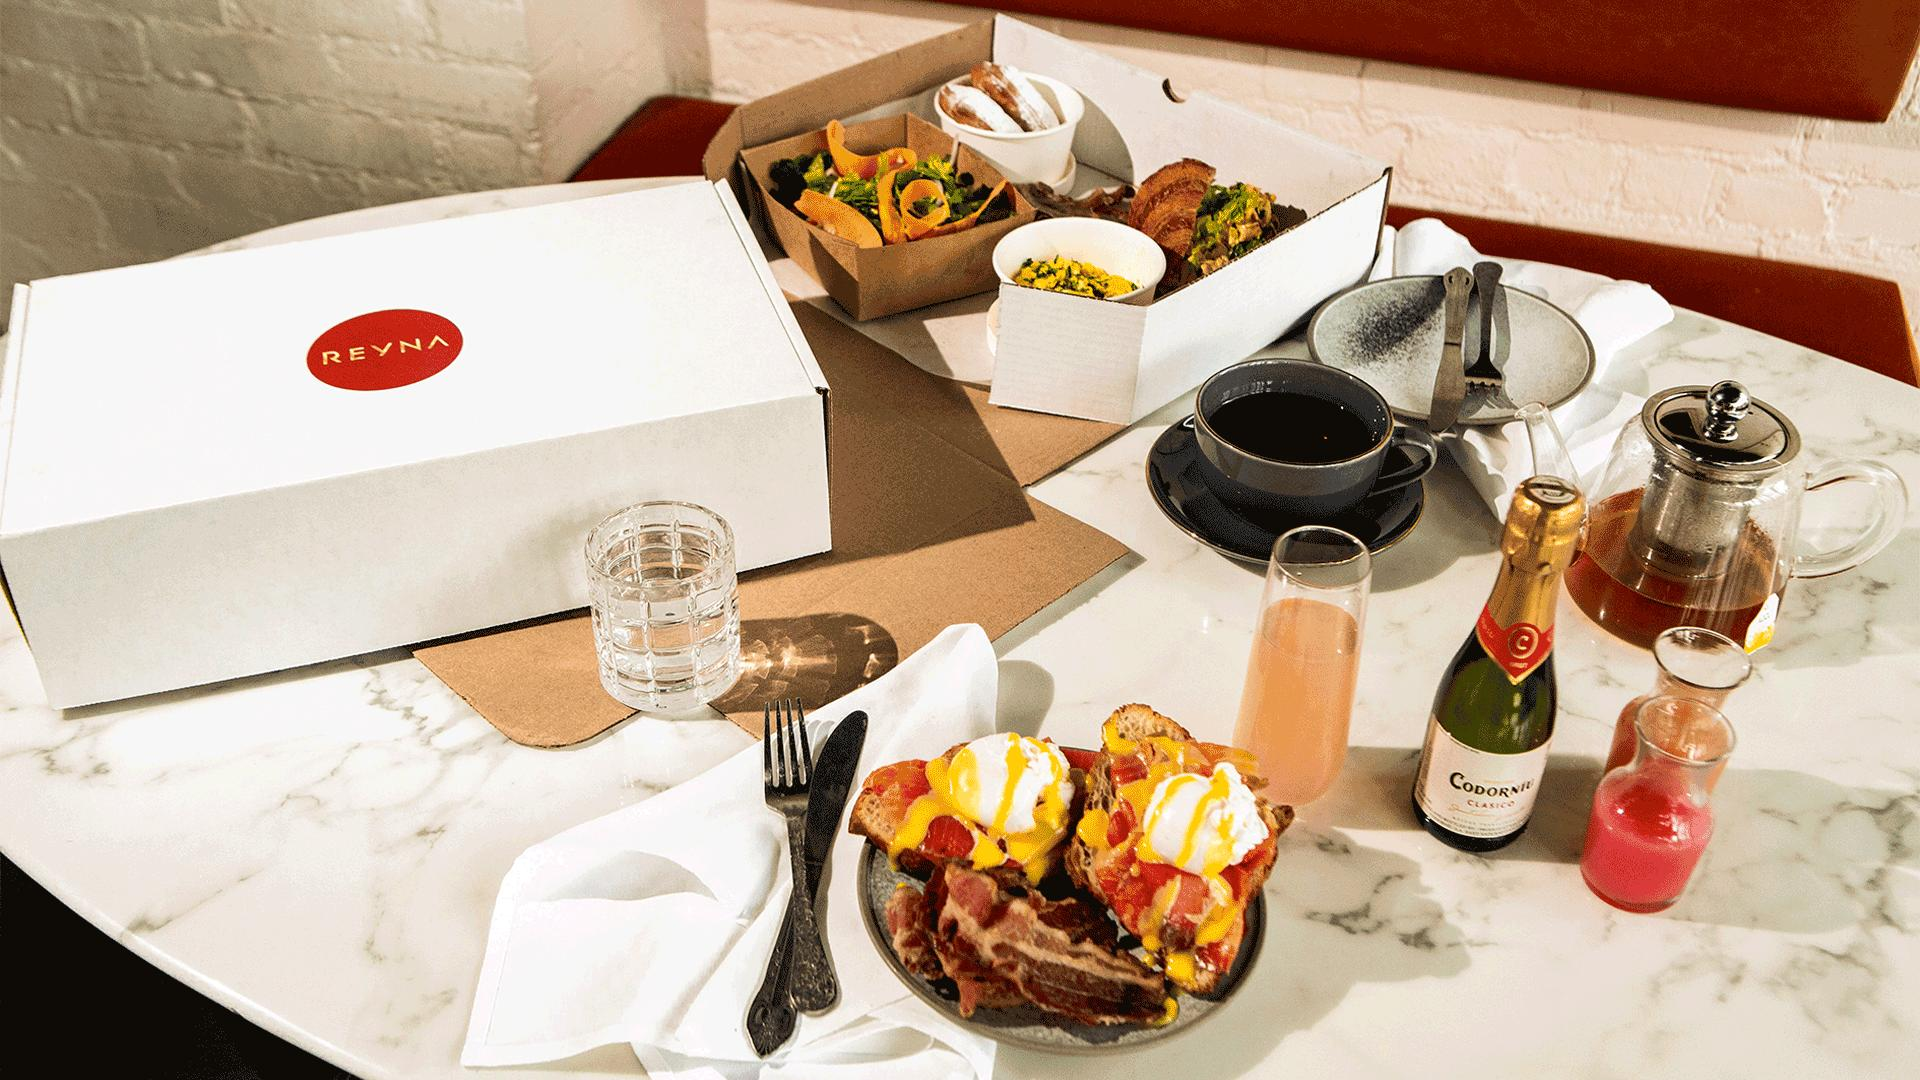 Must-try picnic baskets from Toronto restaurants   Reyna on King's brunch box